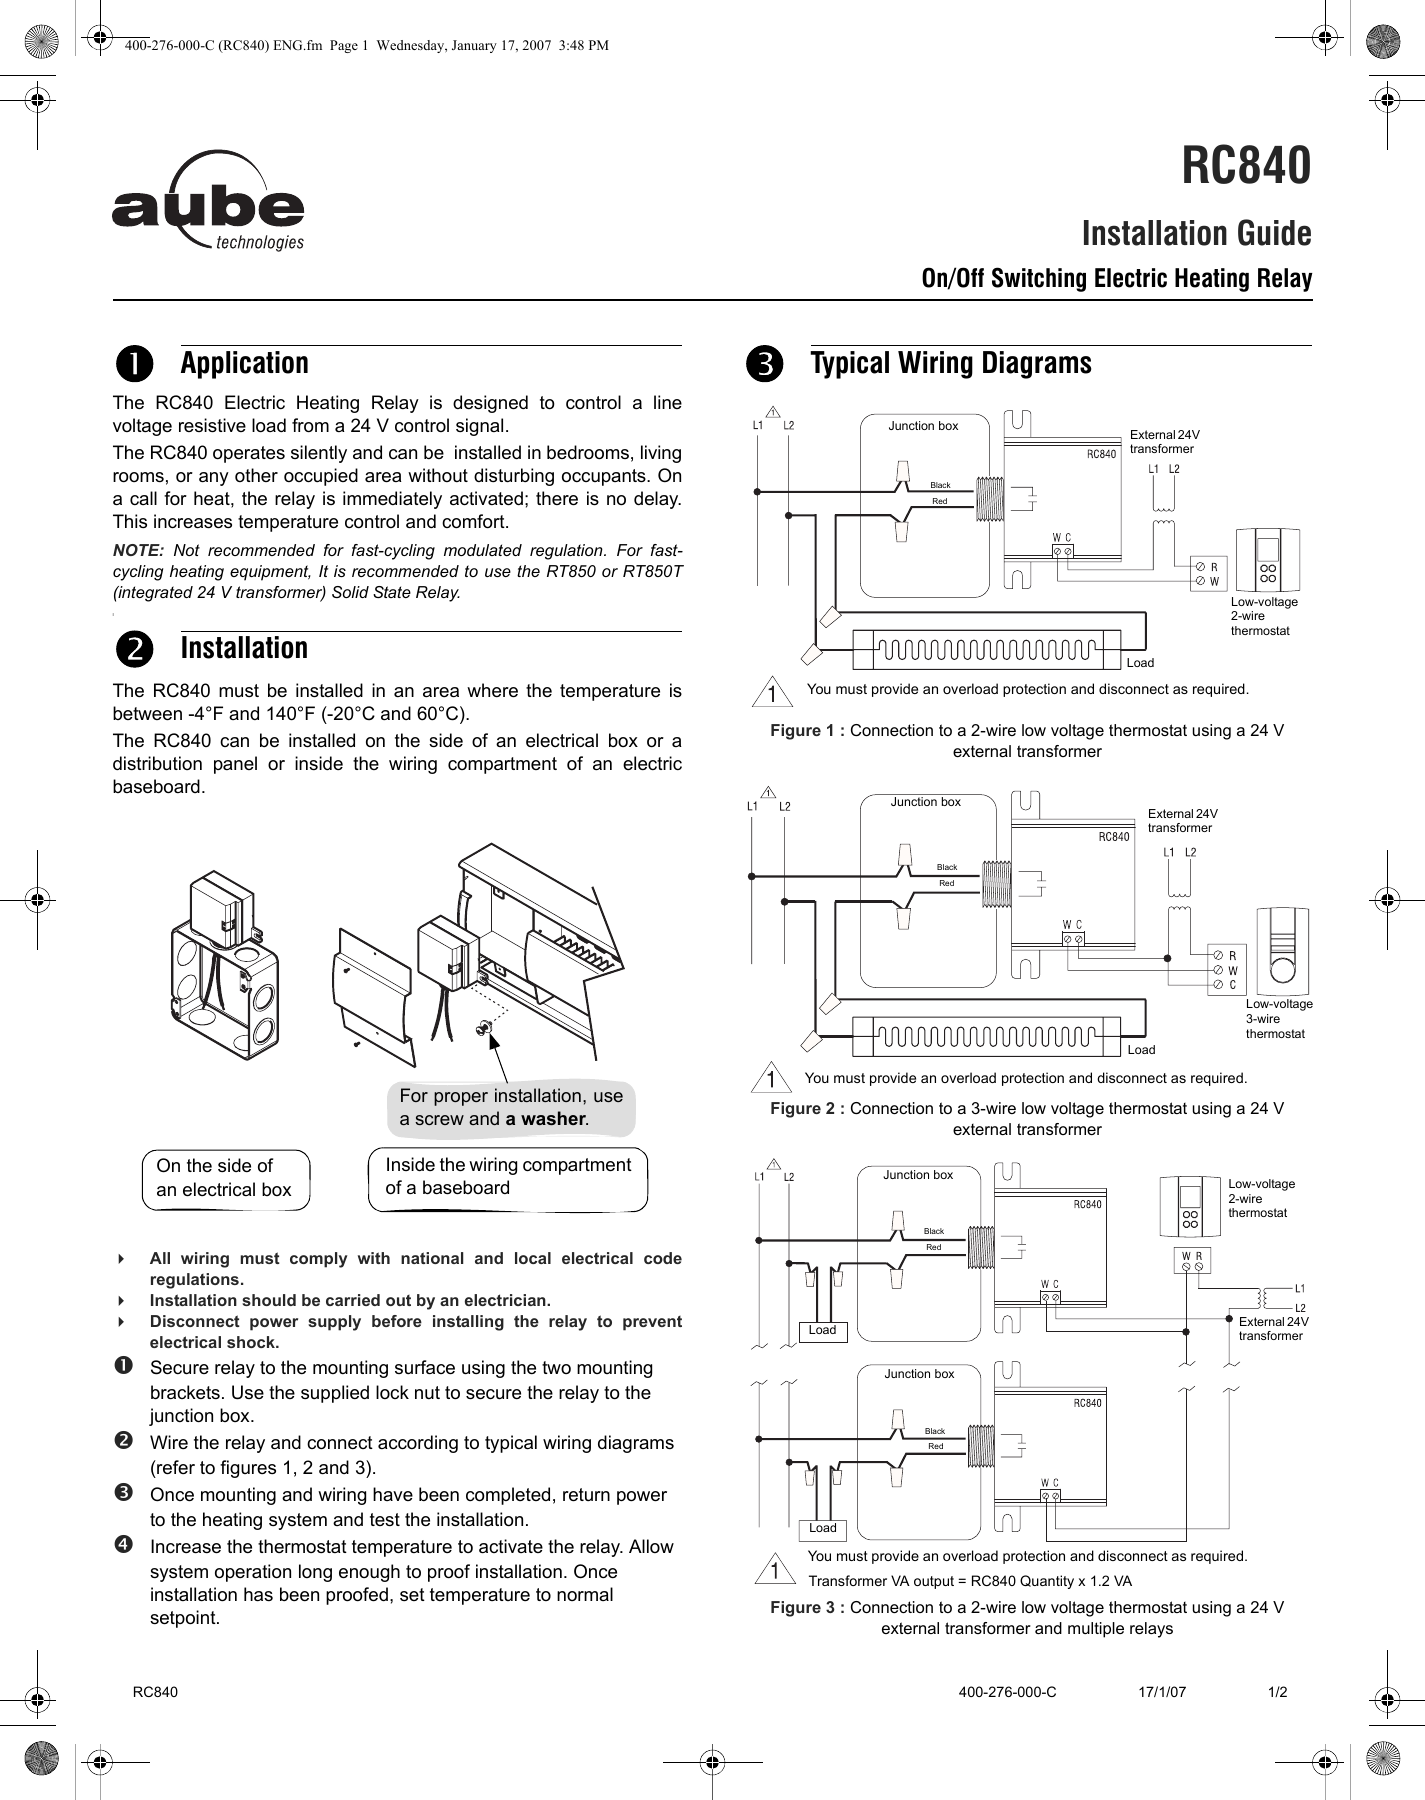 Aube Technologies Rc840 Users Manual 400 276 000 C Rc840 Eng